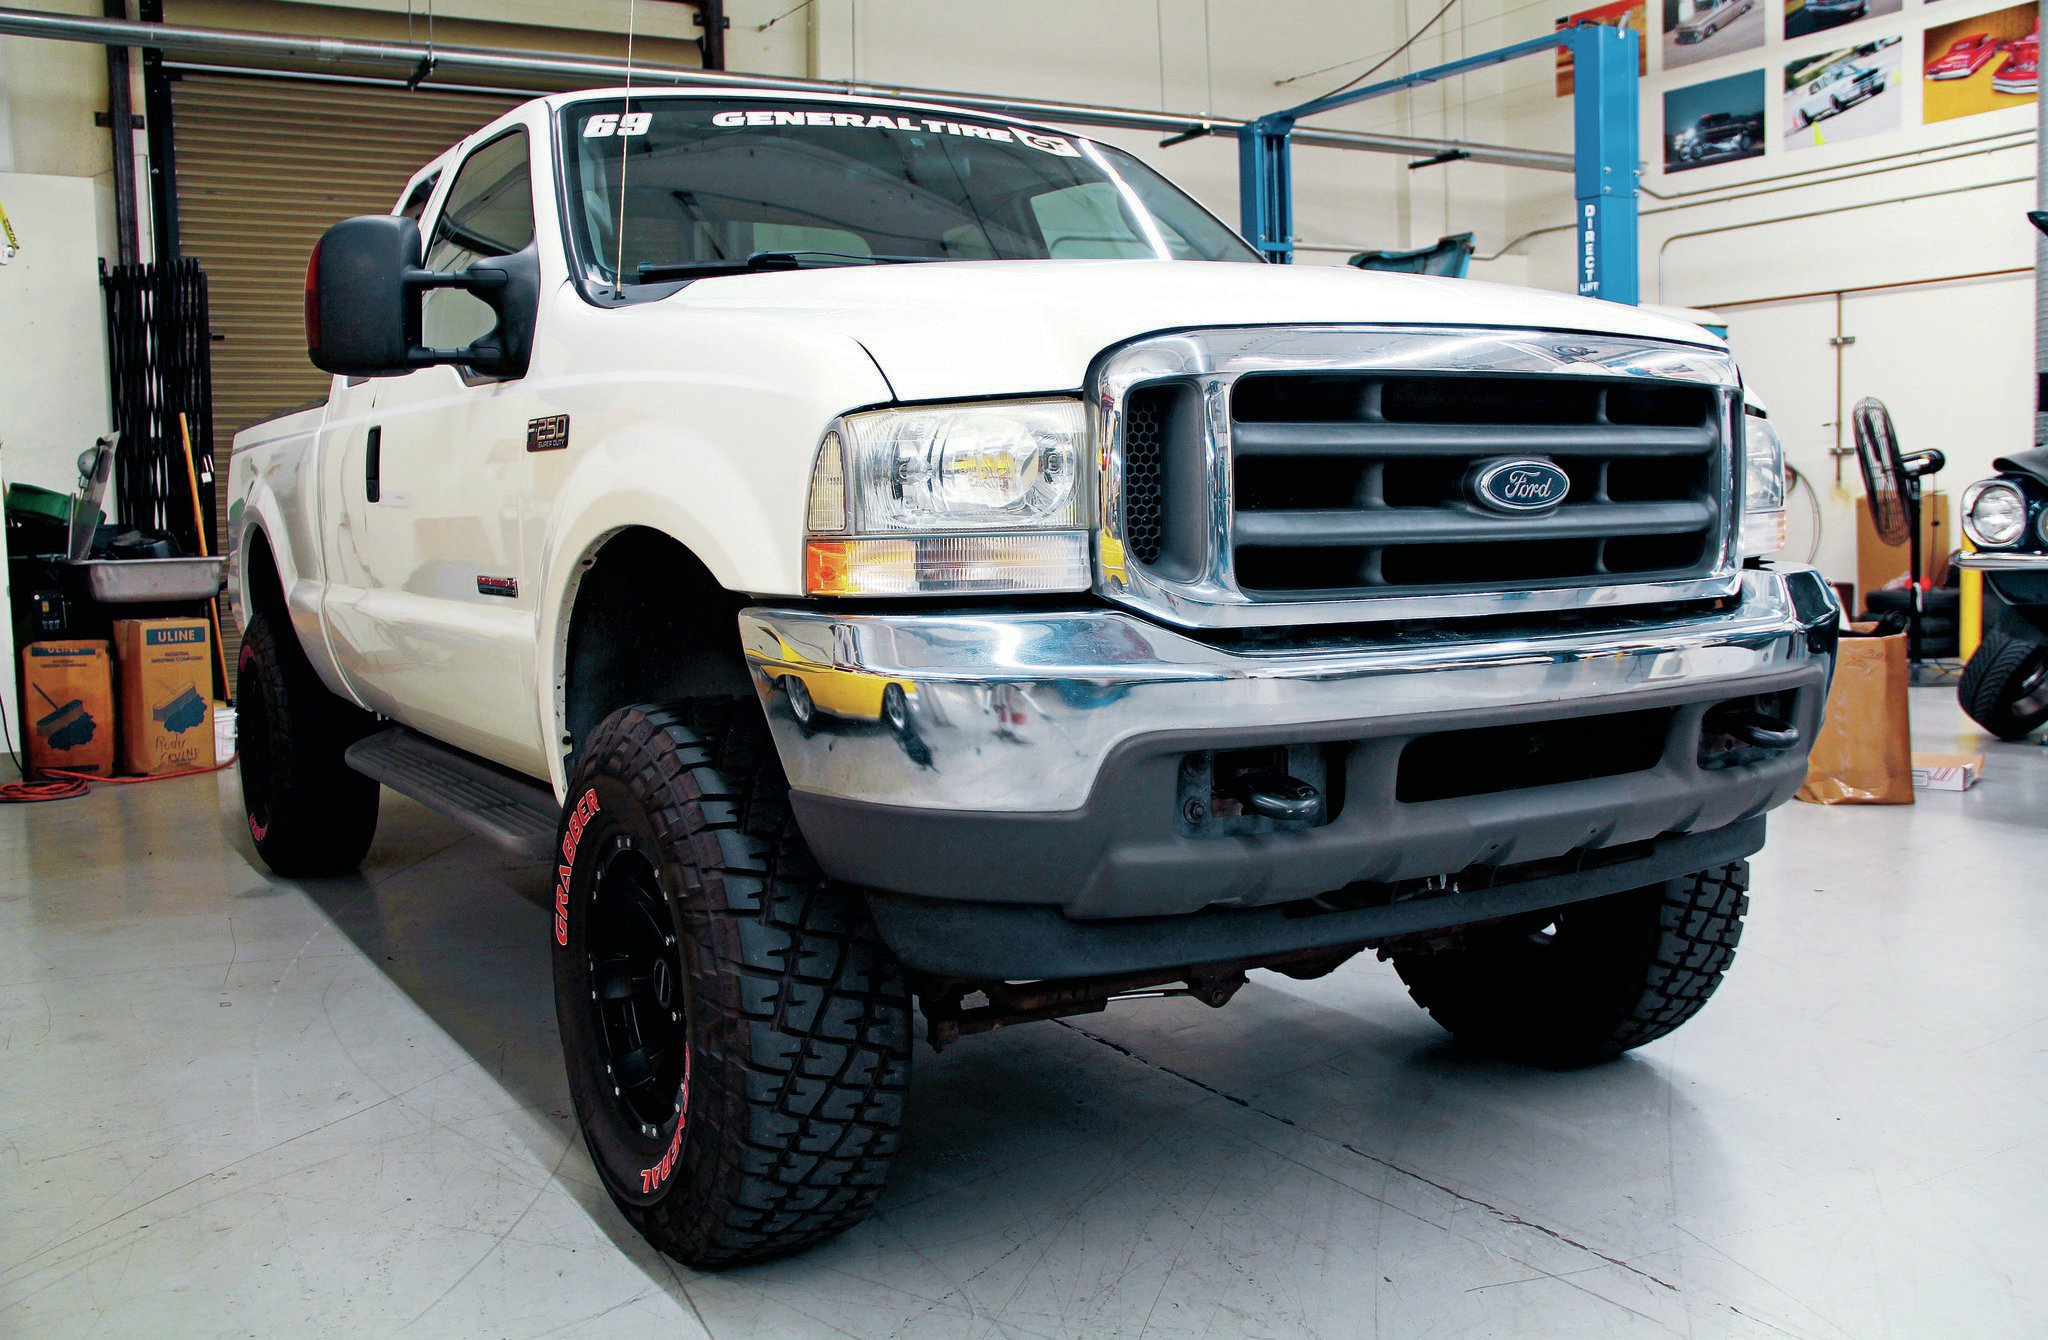 rbp custom truck grille recon halo headlight install on a 2004 ford f250 truck trend